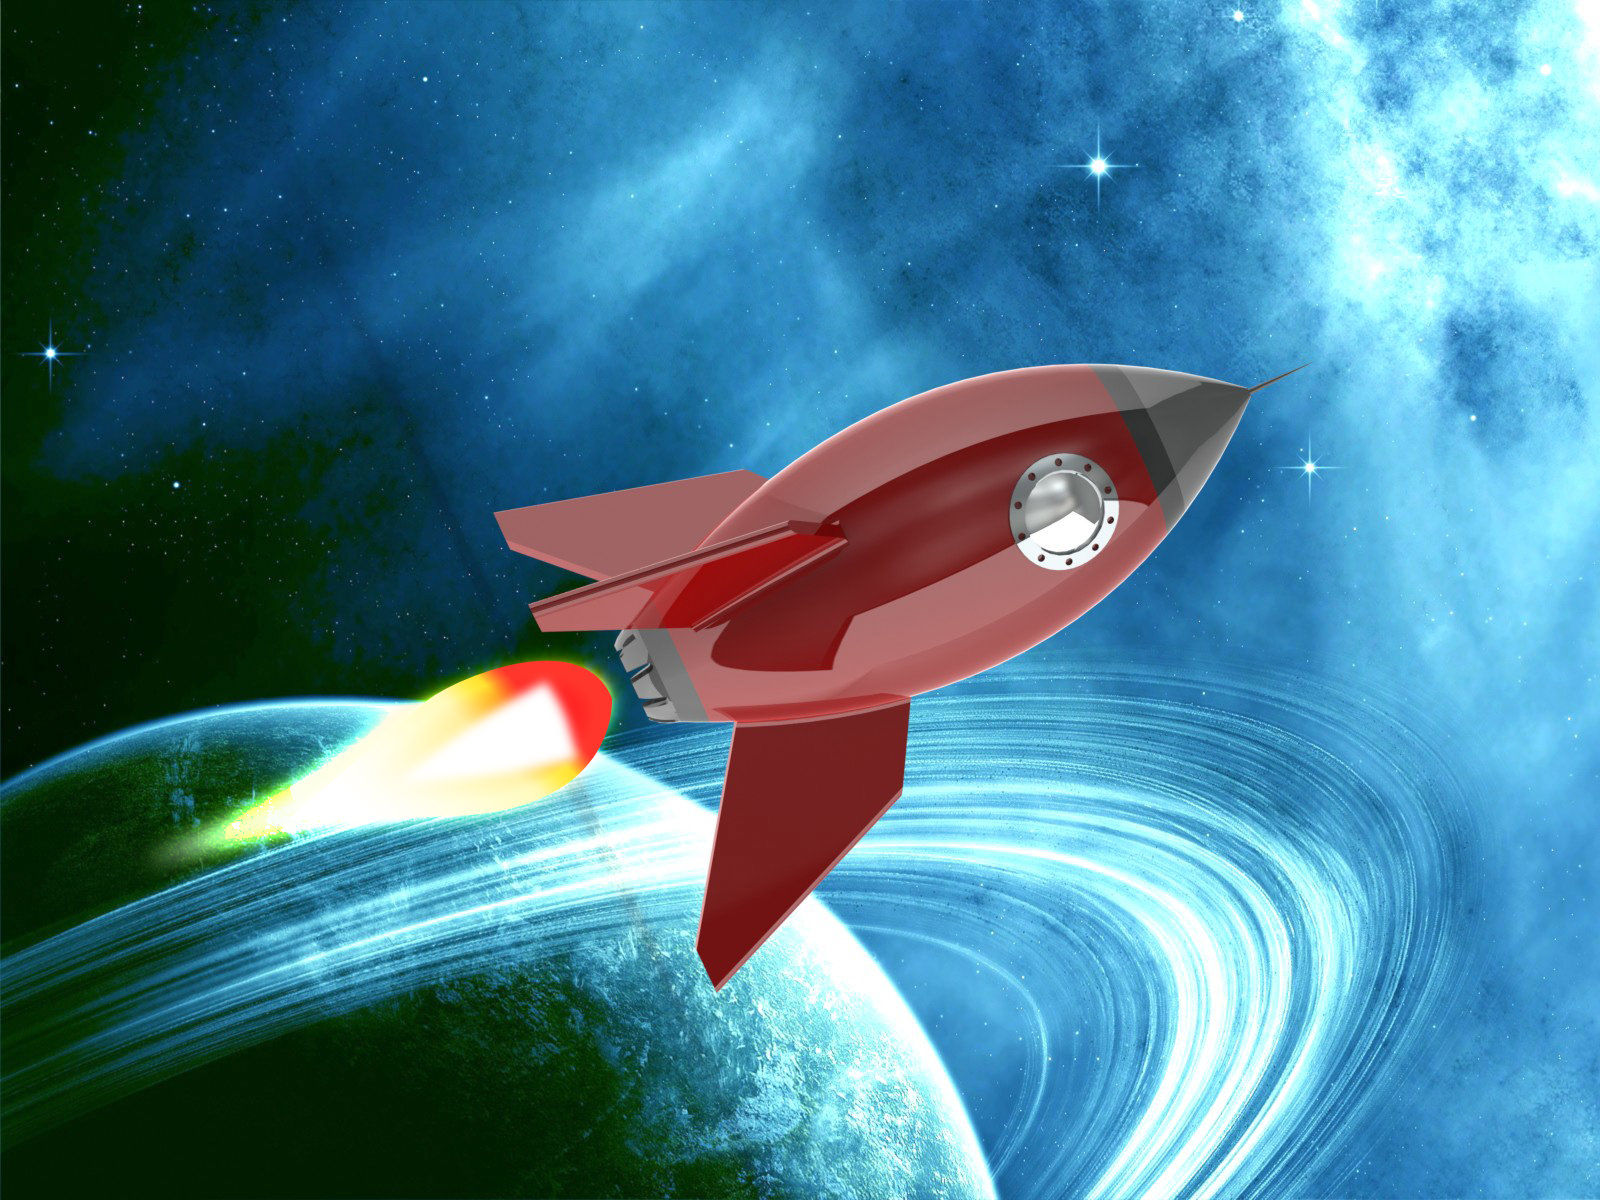 3D Cartoon Rocket Ship